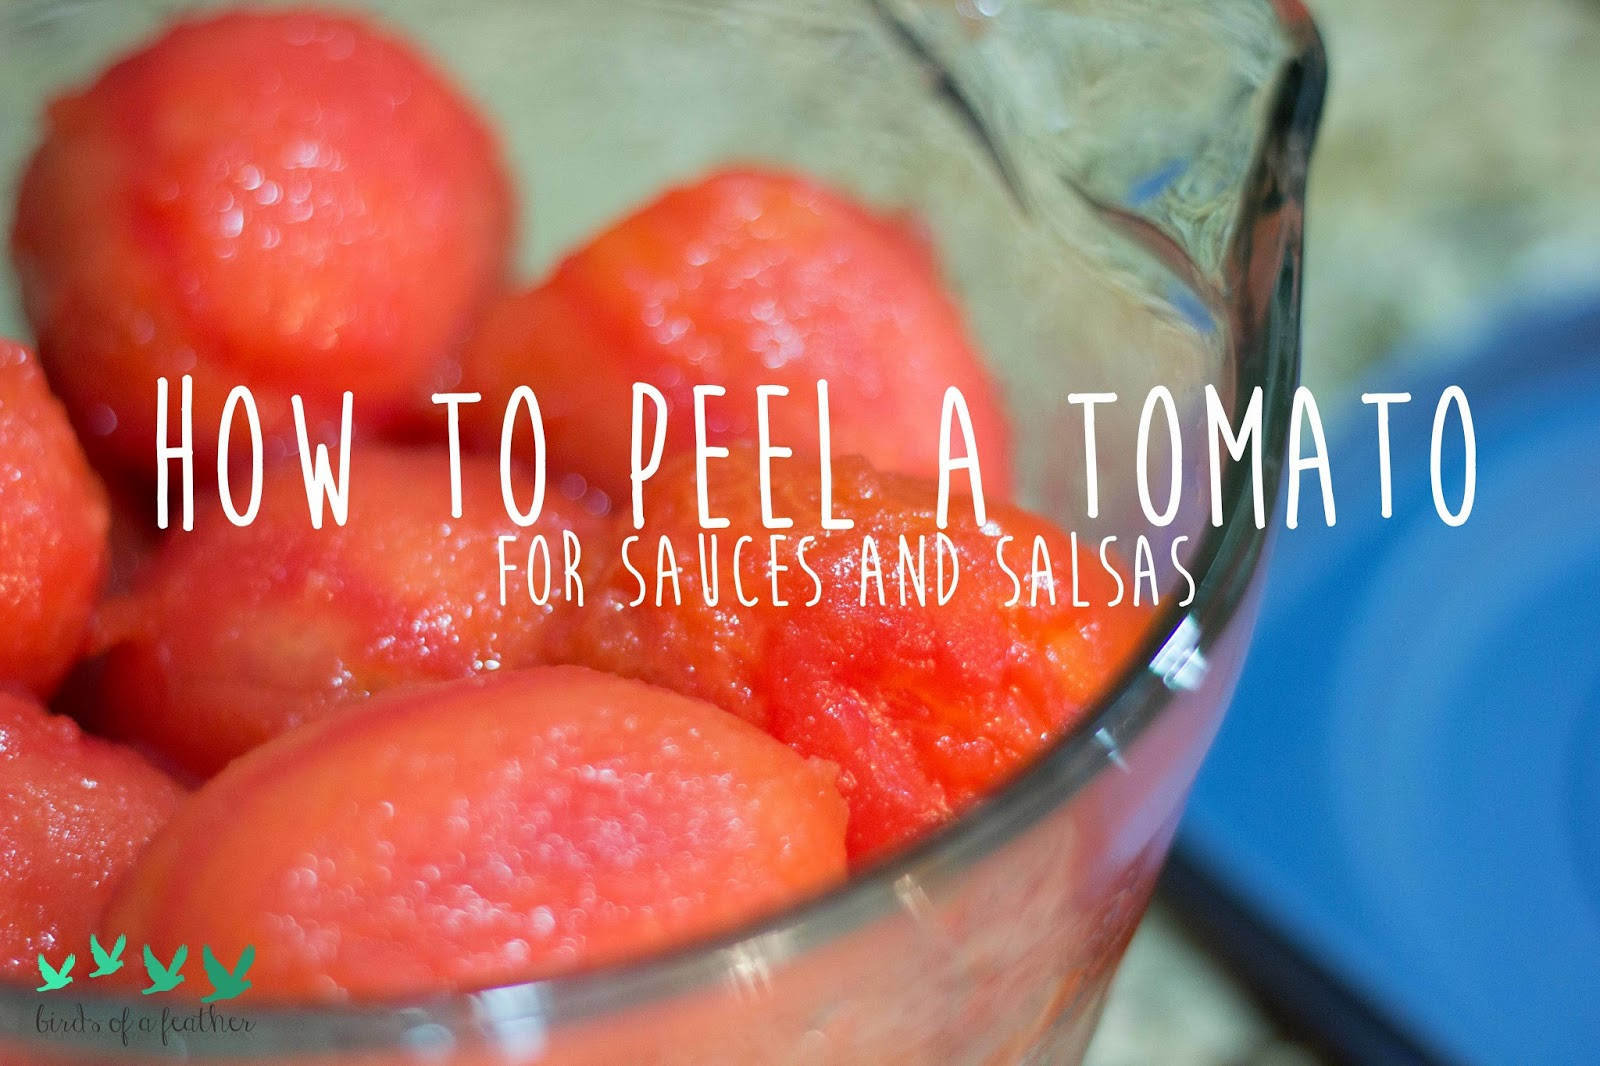 http://www.theweatheredpalate.com/2014/08/how-to-peel-tomato-for-sauces-and-salsa.html